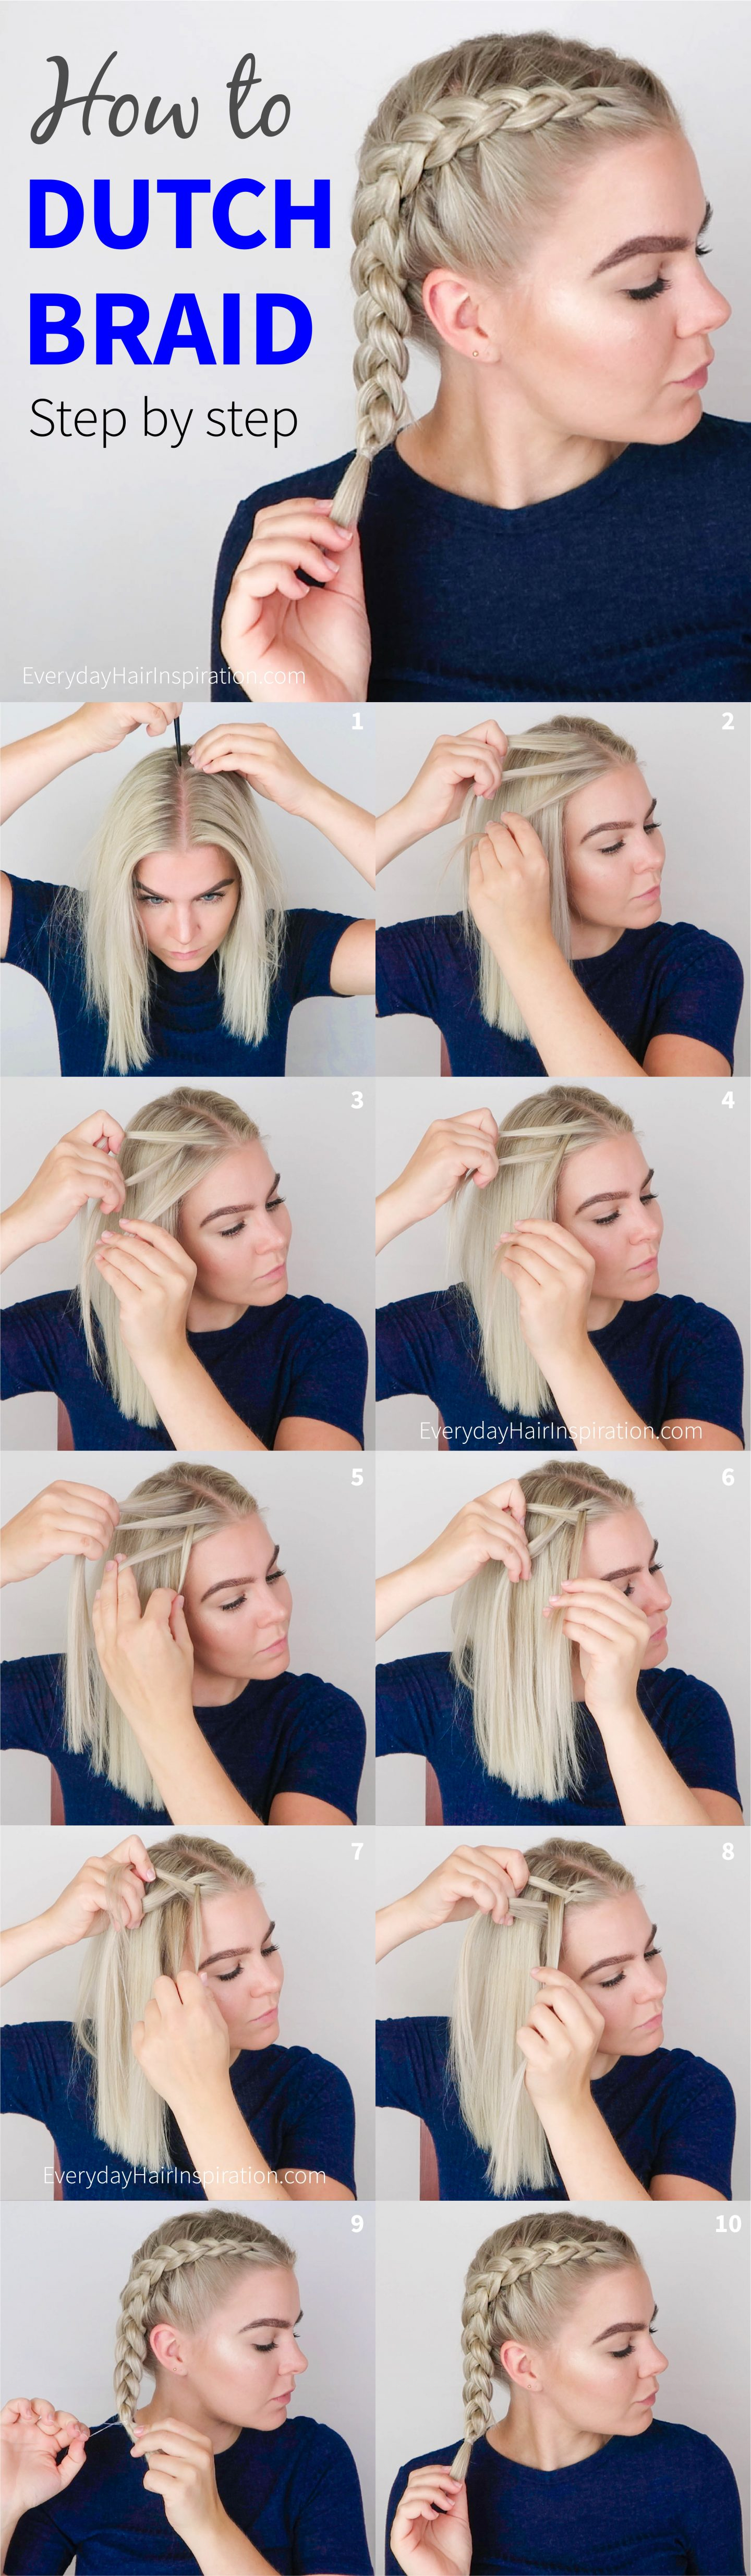 how to dutch braid step by step - everyday hair inspiration